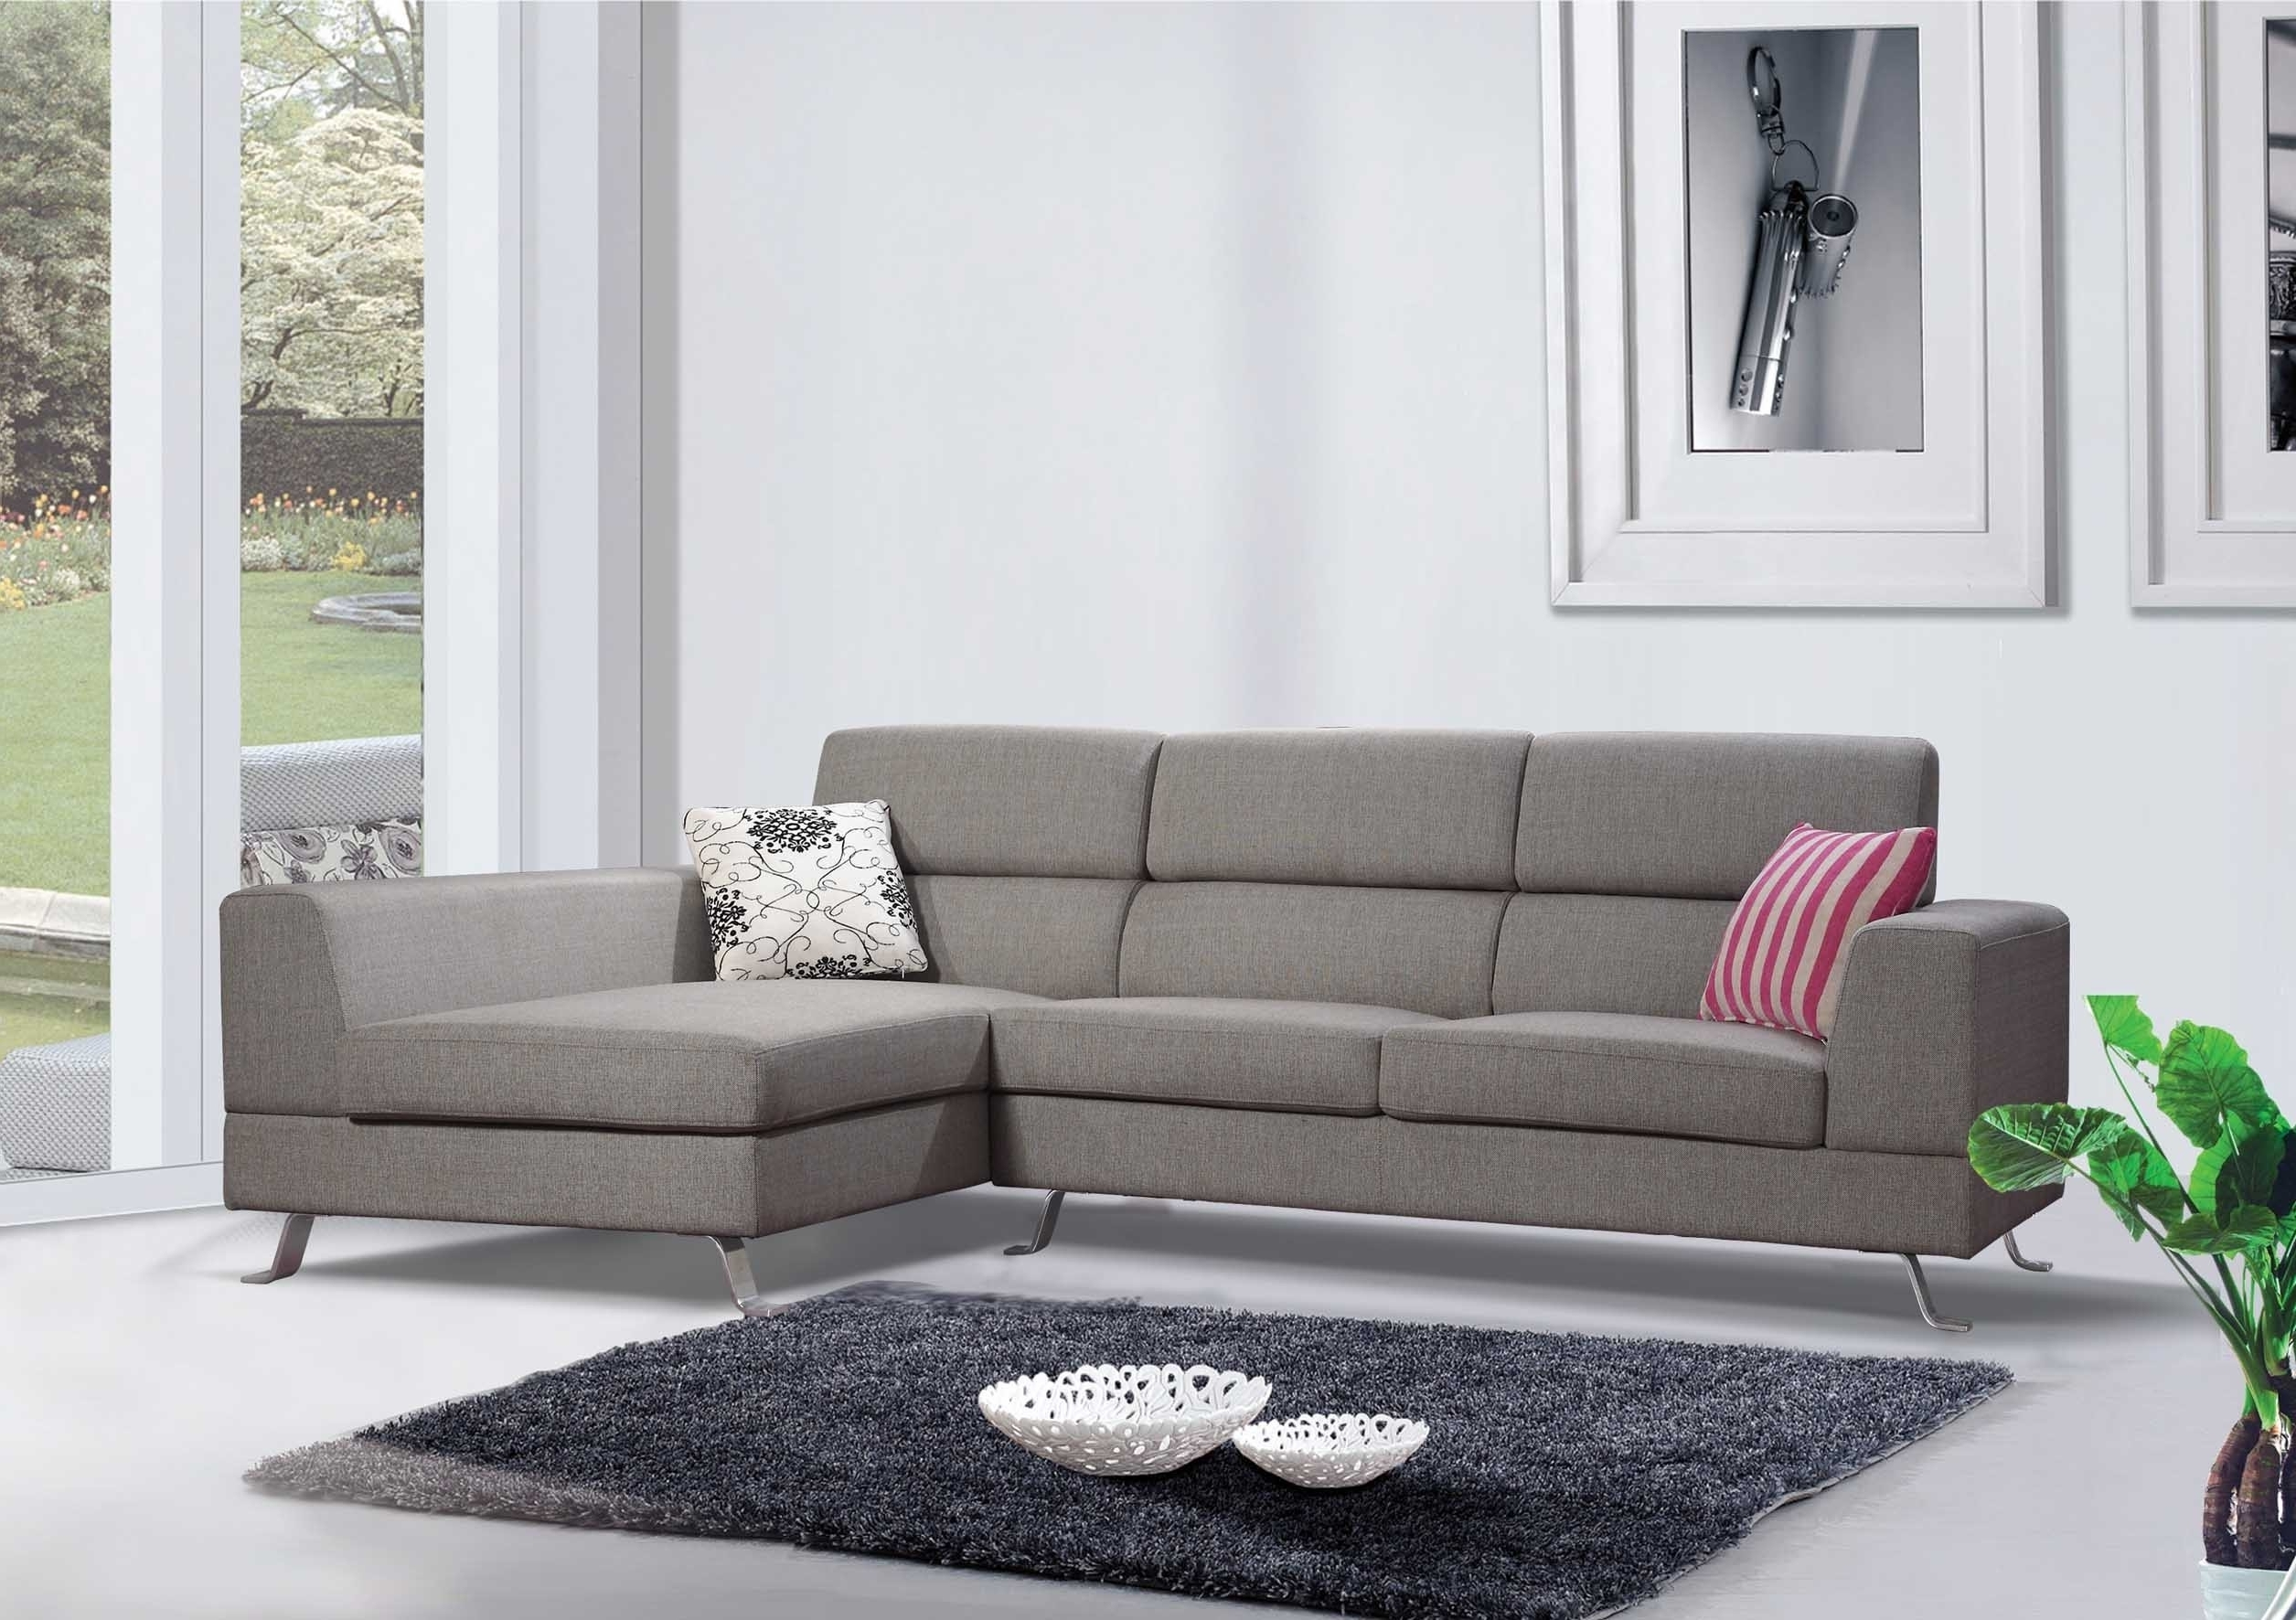 2018 Red Sectional Sleeper Sofa – Home Design Ideas And Pictures With Regard To Durham Region Sectional Sofas (View 1 of 20)